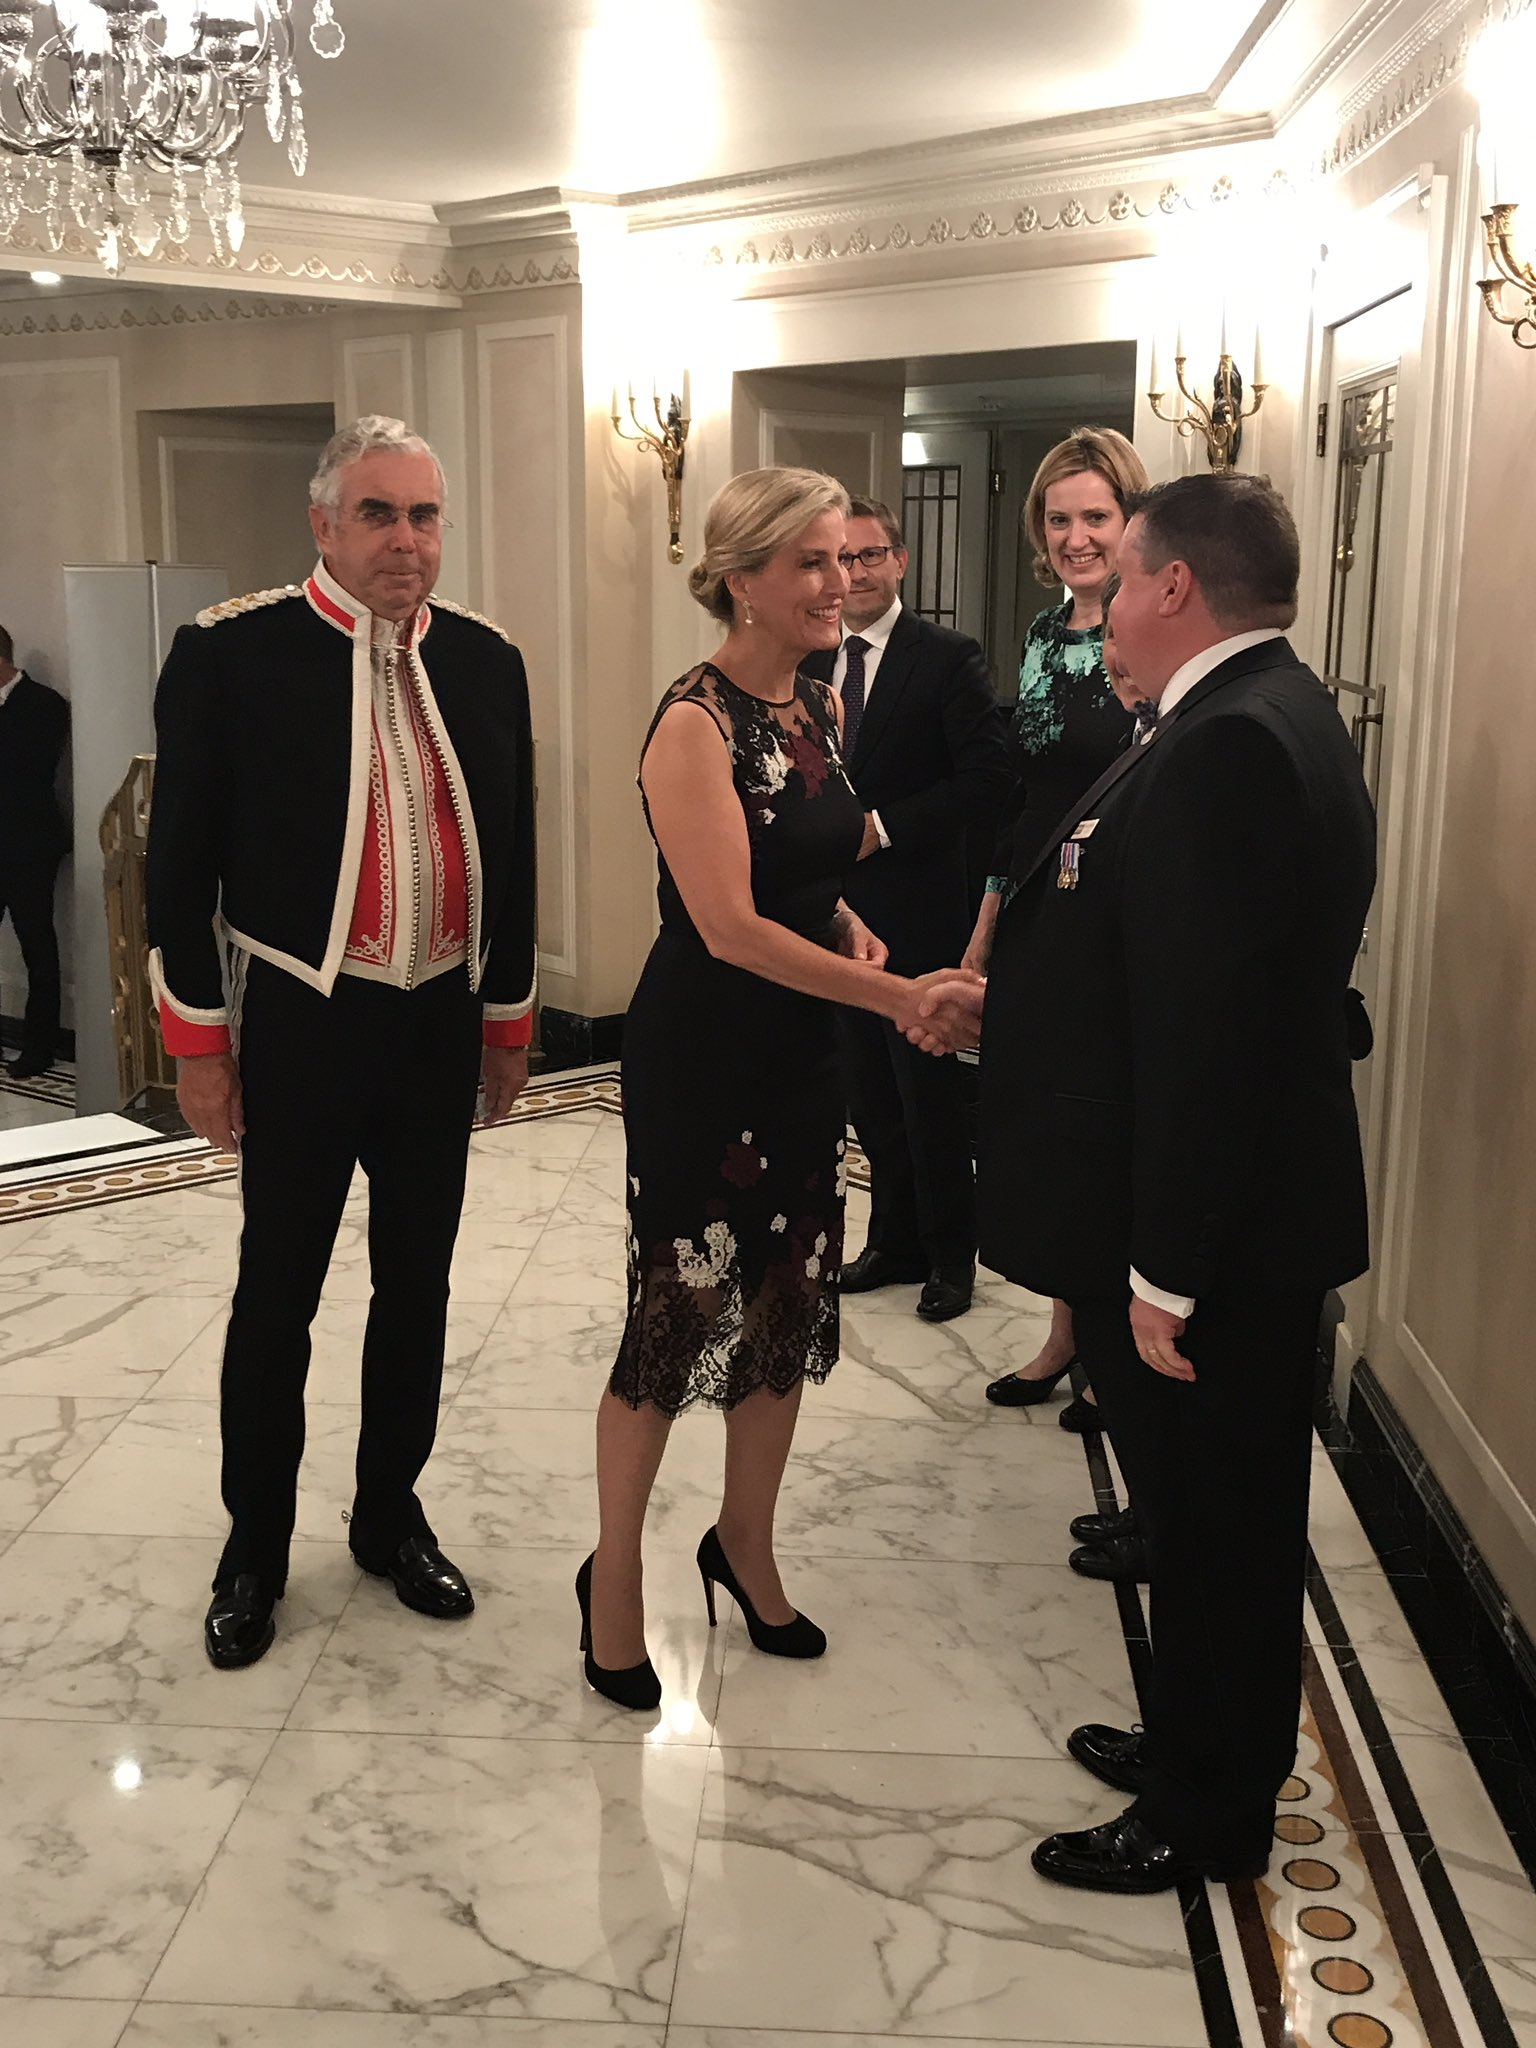 Honoured to welcome HRH Countess of Wessex to this year's #PoliceBravery awards @RoyalFamily  @AmberRuddHR @metpoliceuk @PFEW_Chair https://t.co/1h1nrwY0gu